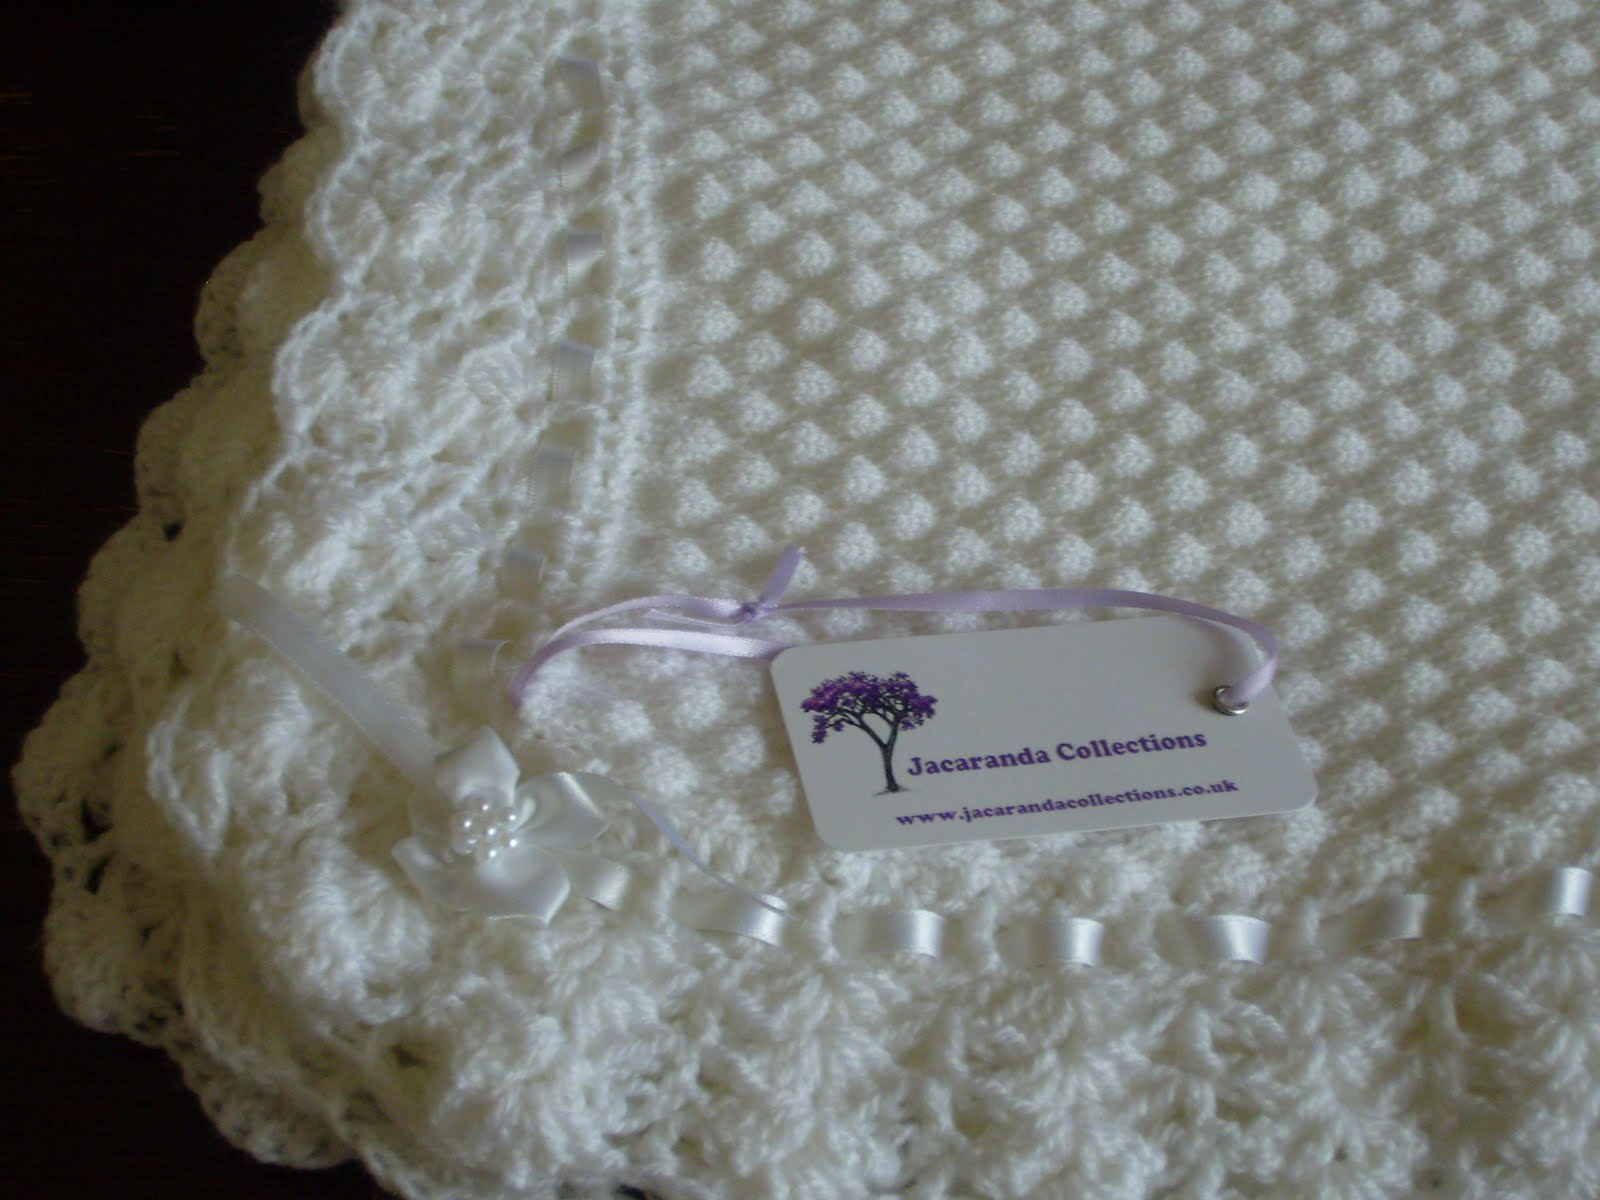 Crocheting Edges On Baby Blankets : Jacaranda Collections: Machine knitted tuck blanket with crochet edge